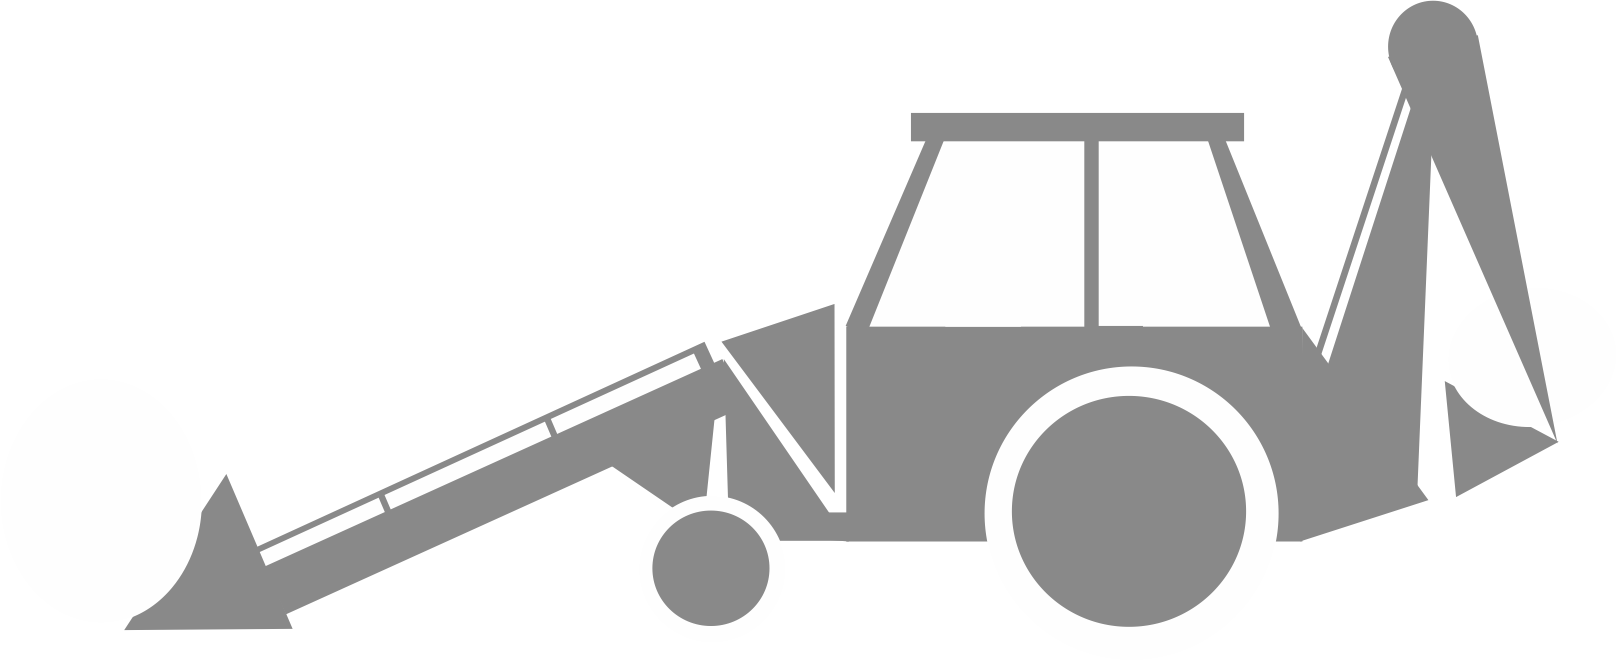 digger-icon.png